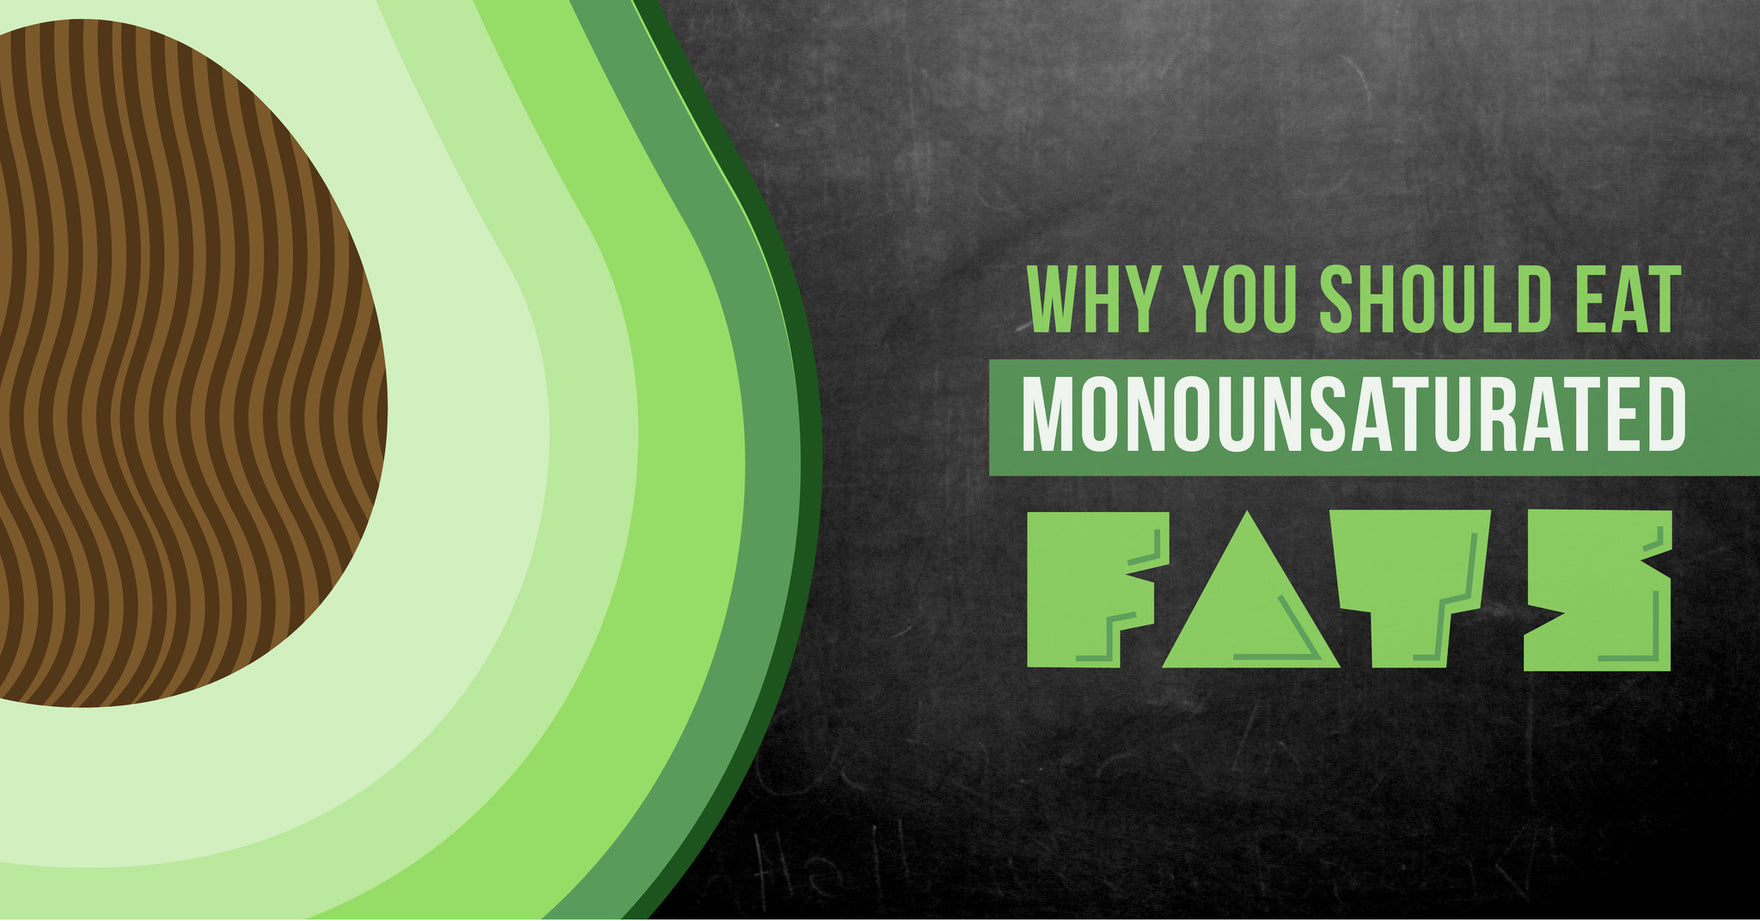 Why You Should Eat Monounsaturated Fats